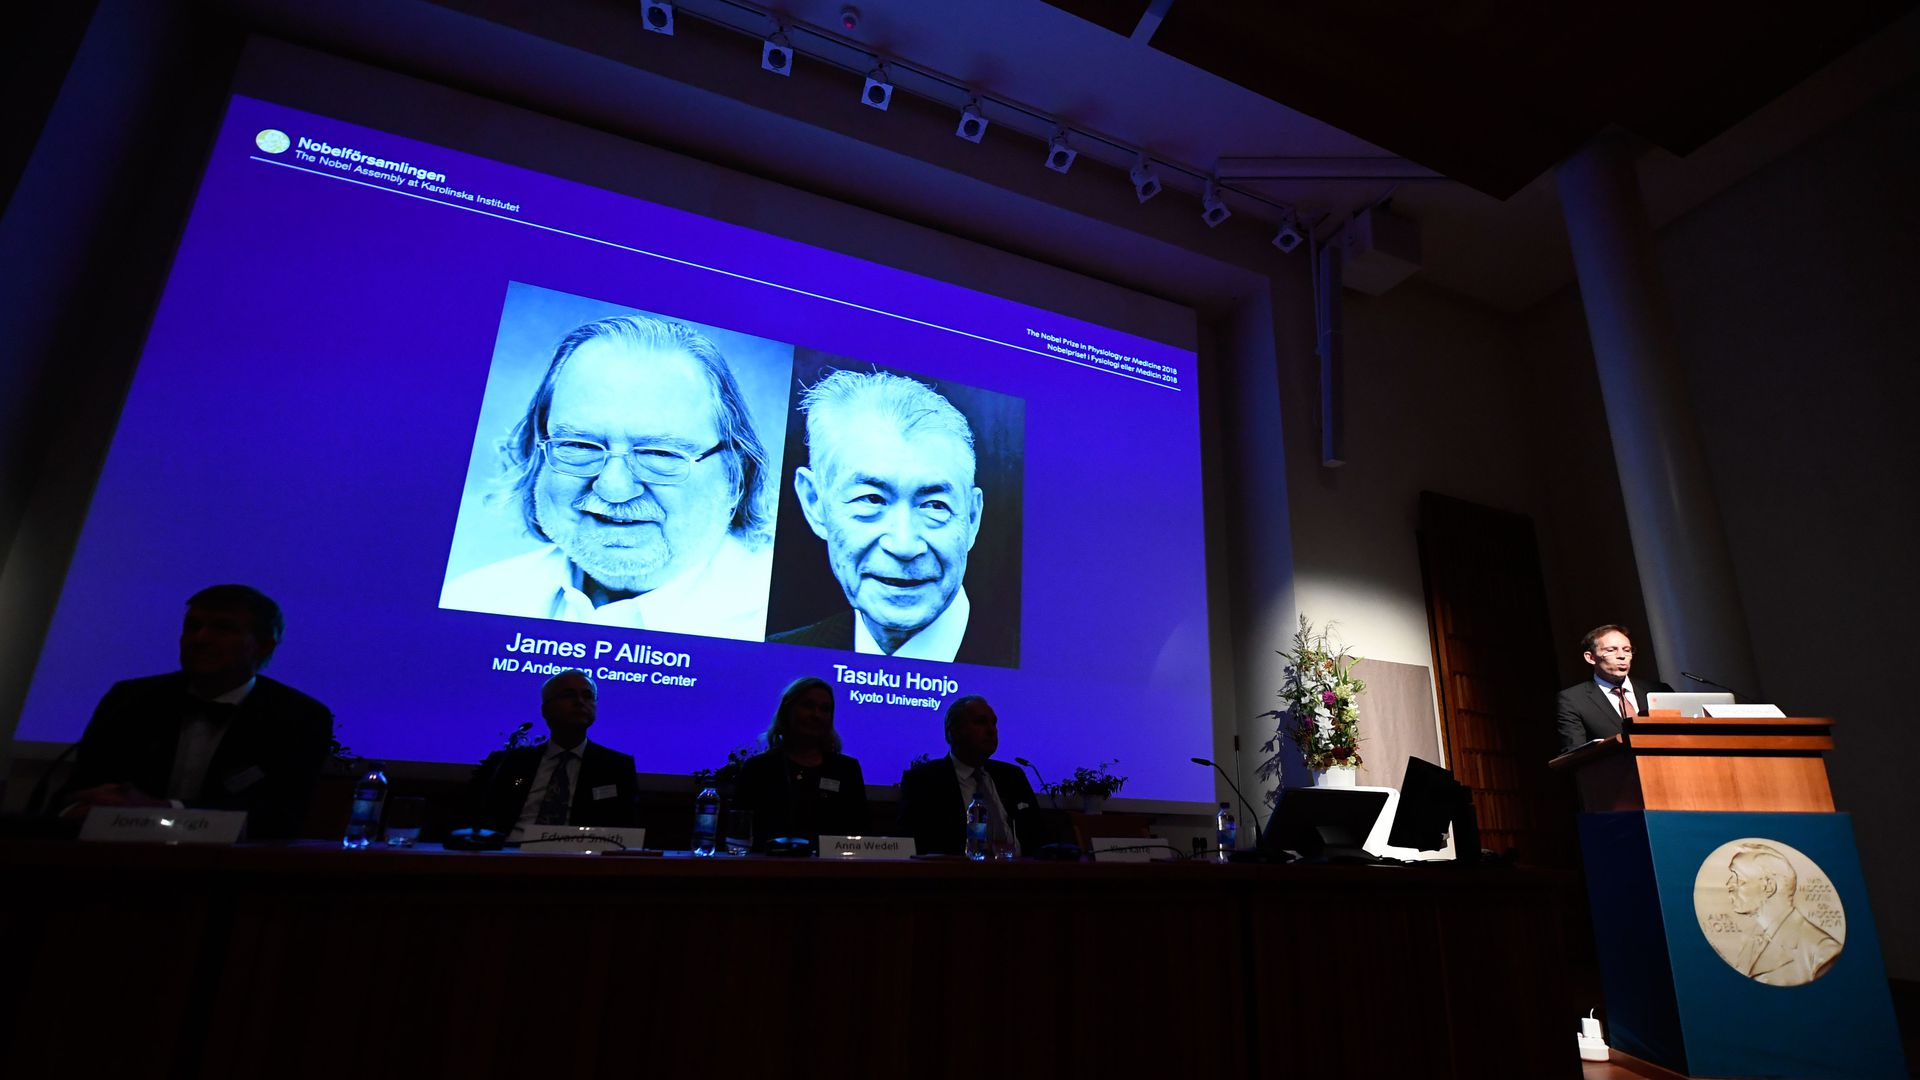 Cancer researchers recognized for receiving Nobel prize